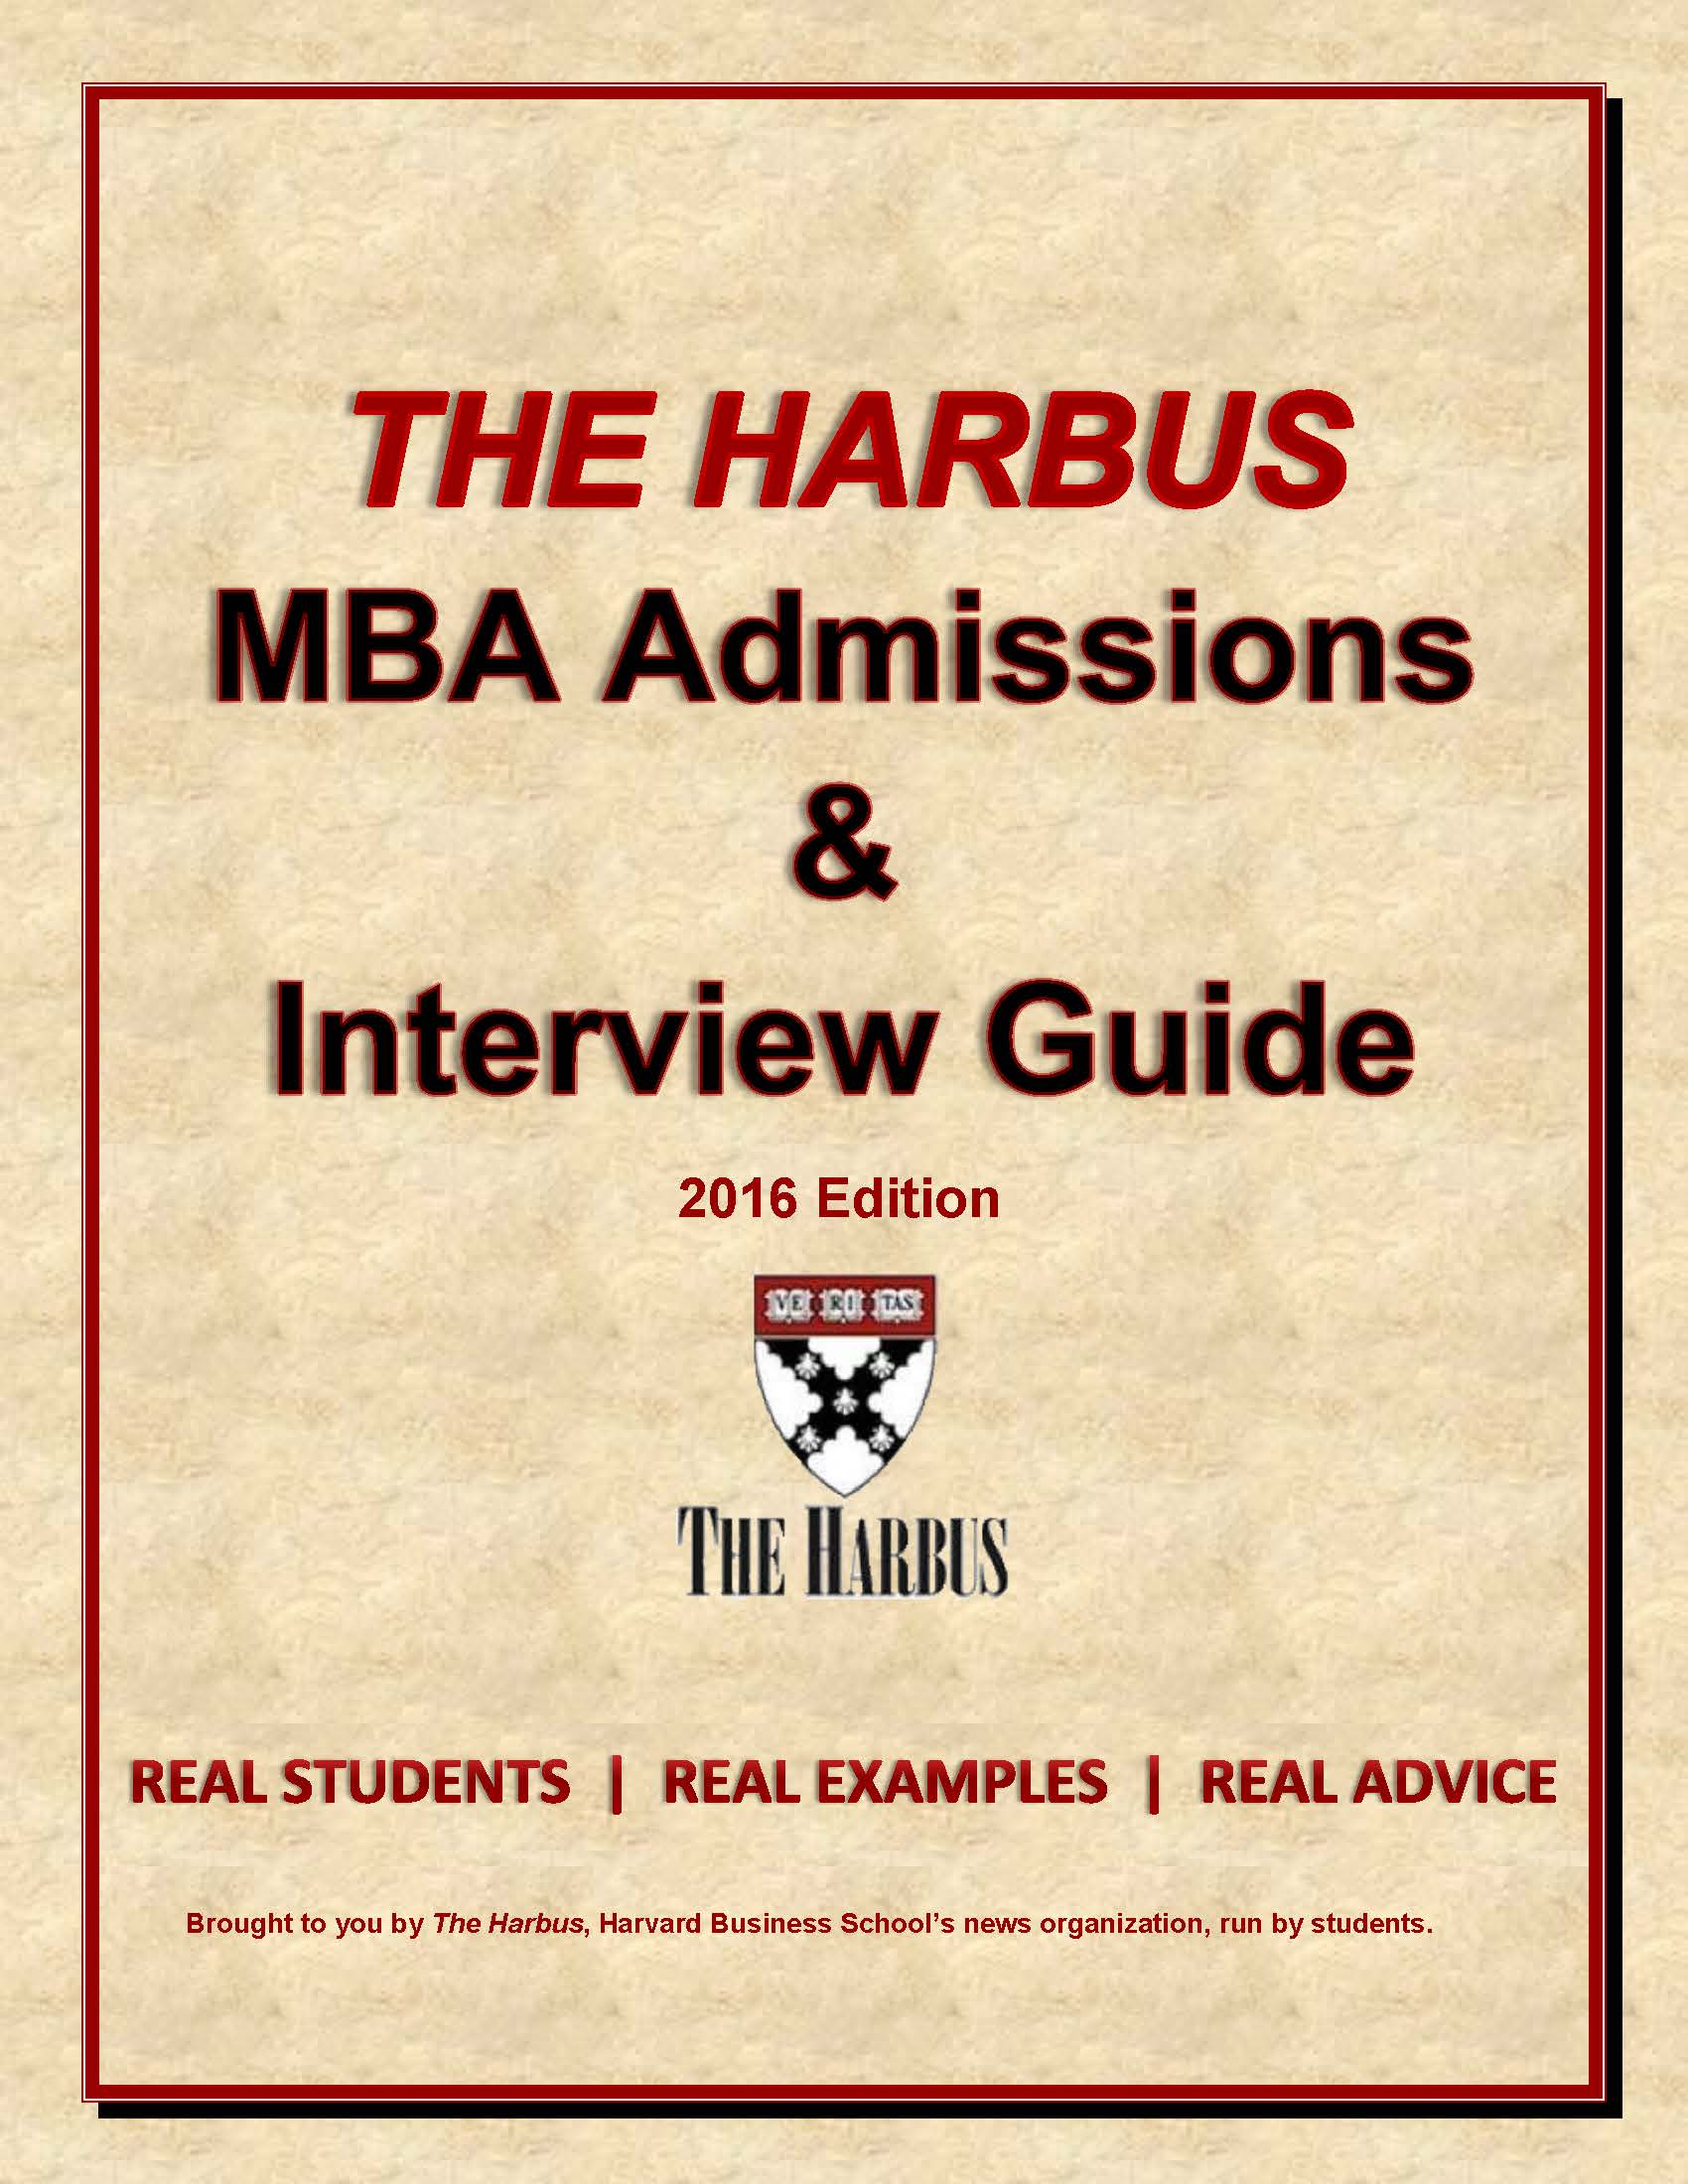 THE ADMISSIONS & INTERVIEW GUIDE 2016 – The Harbus